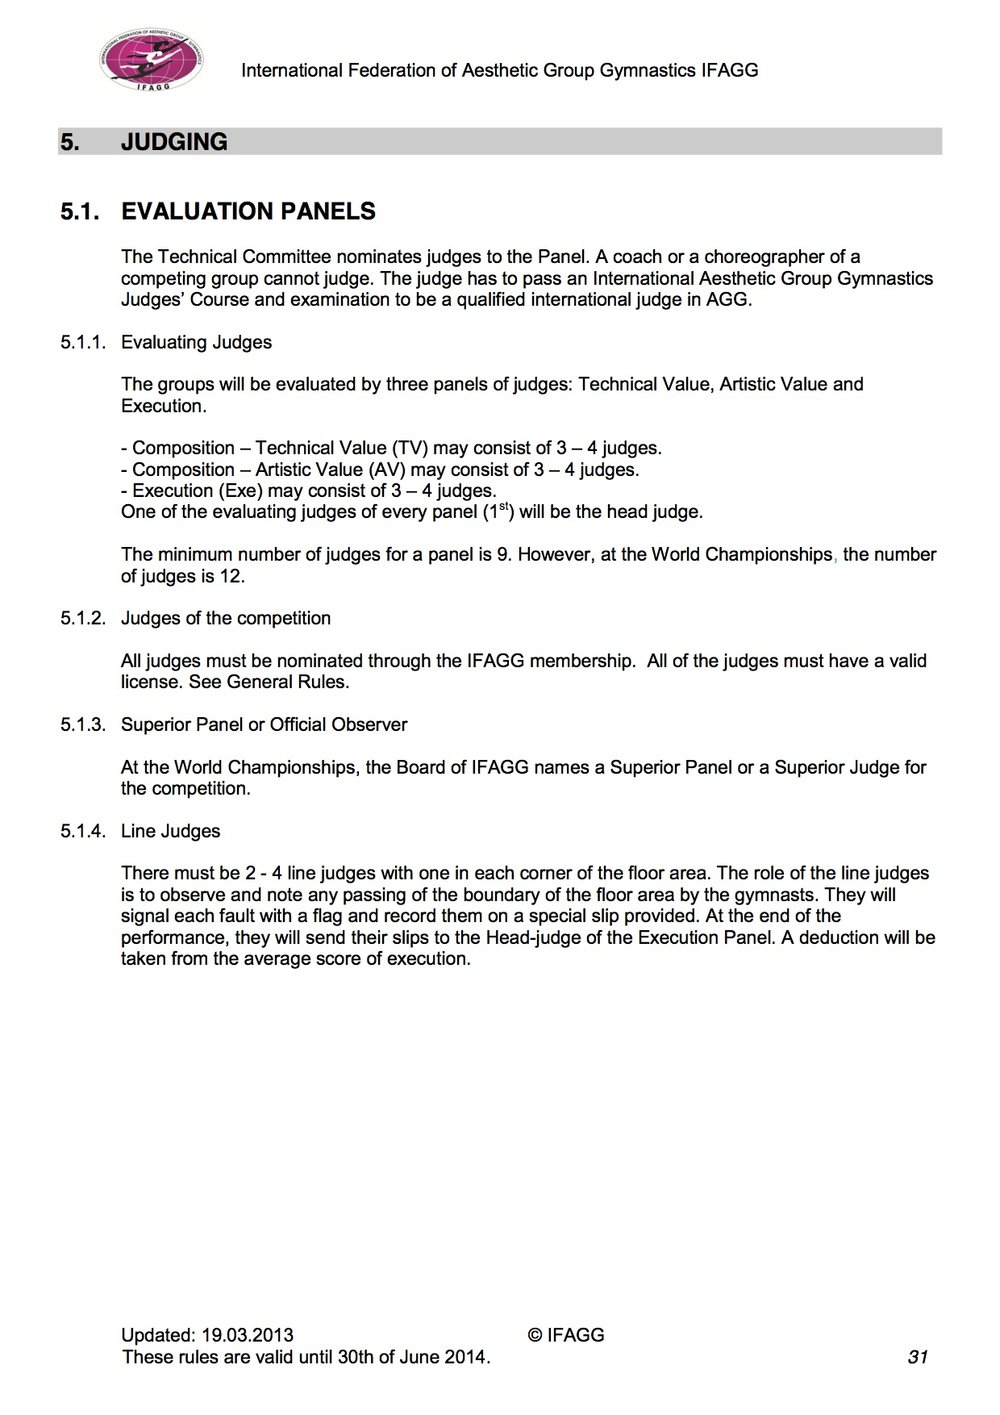 IFAGG Competition rules31.jpg